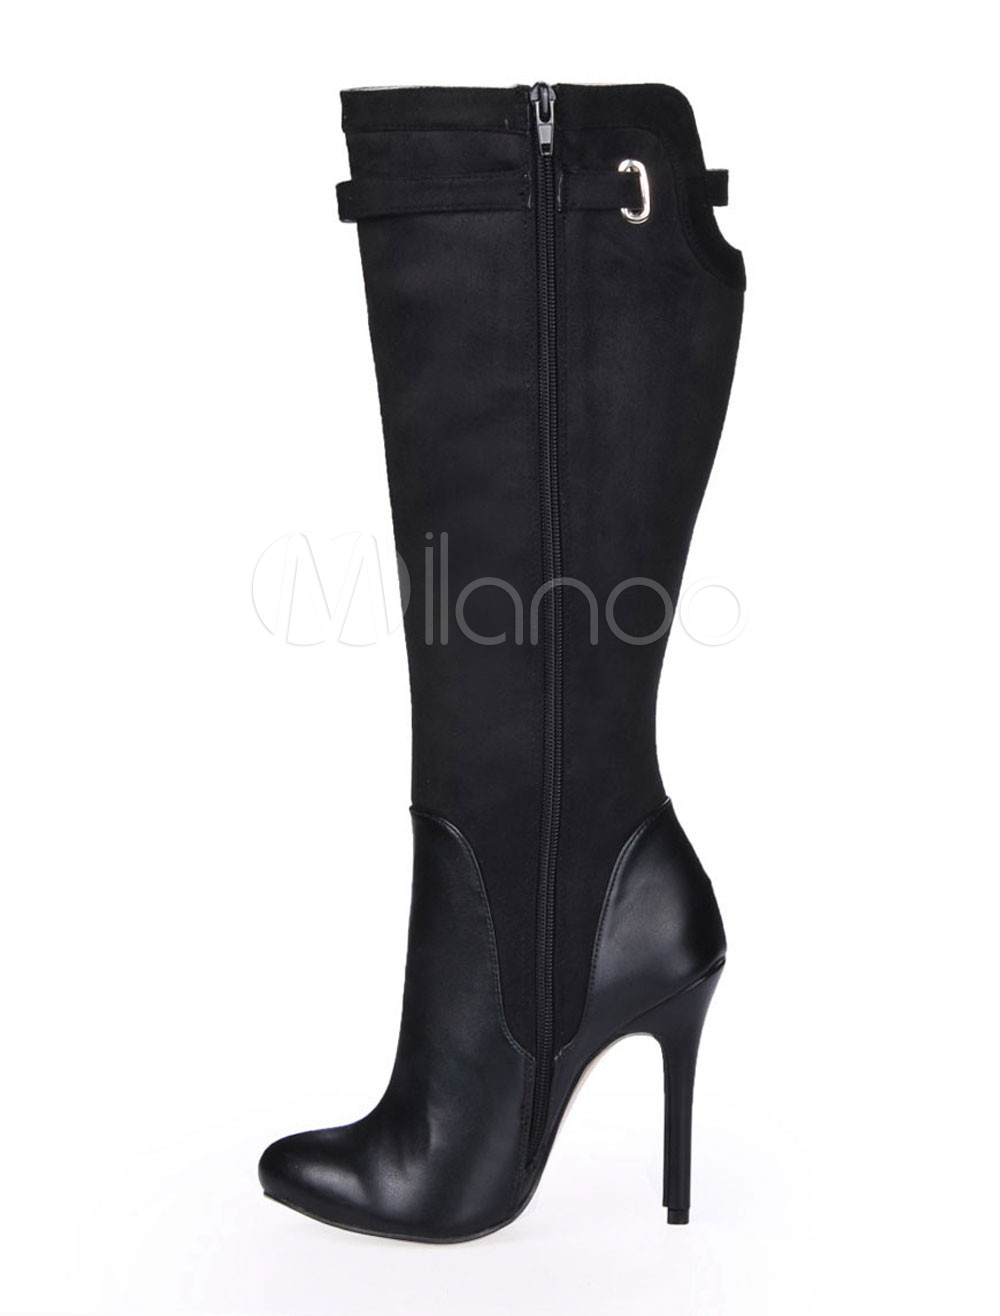 Vintage Black Spike Heel Buckle Stretch Satin Sanding Knee Length Boots for Women